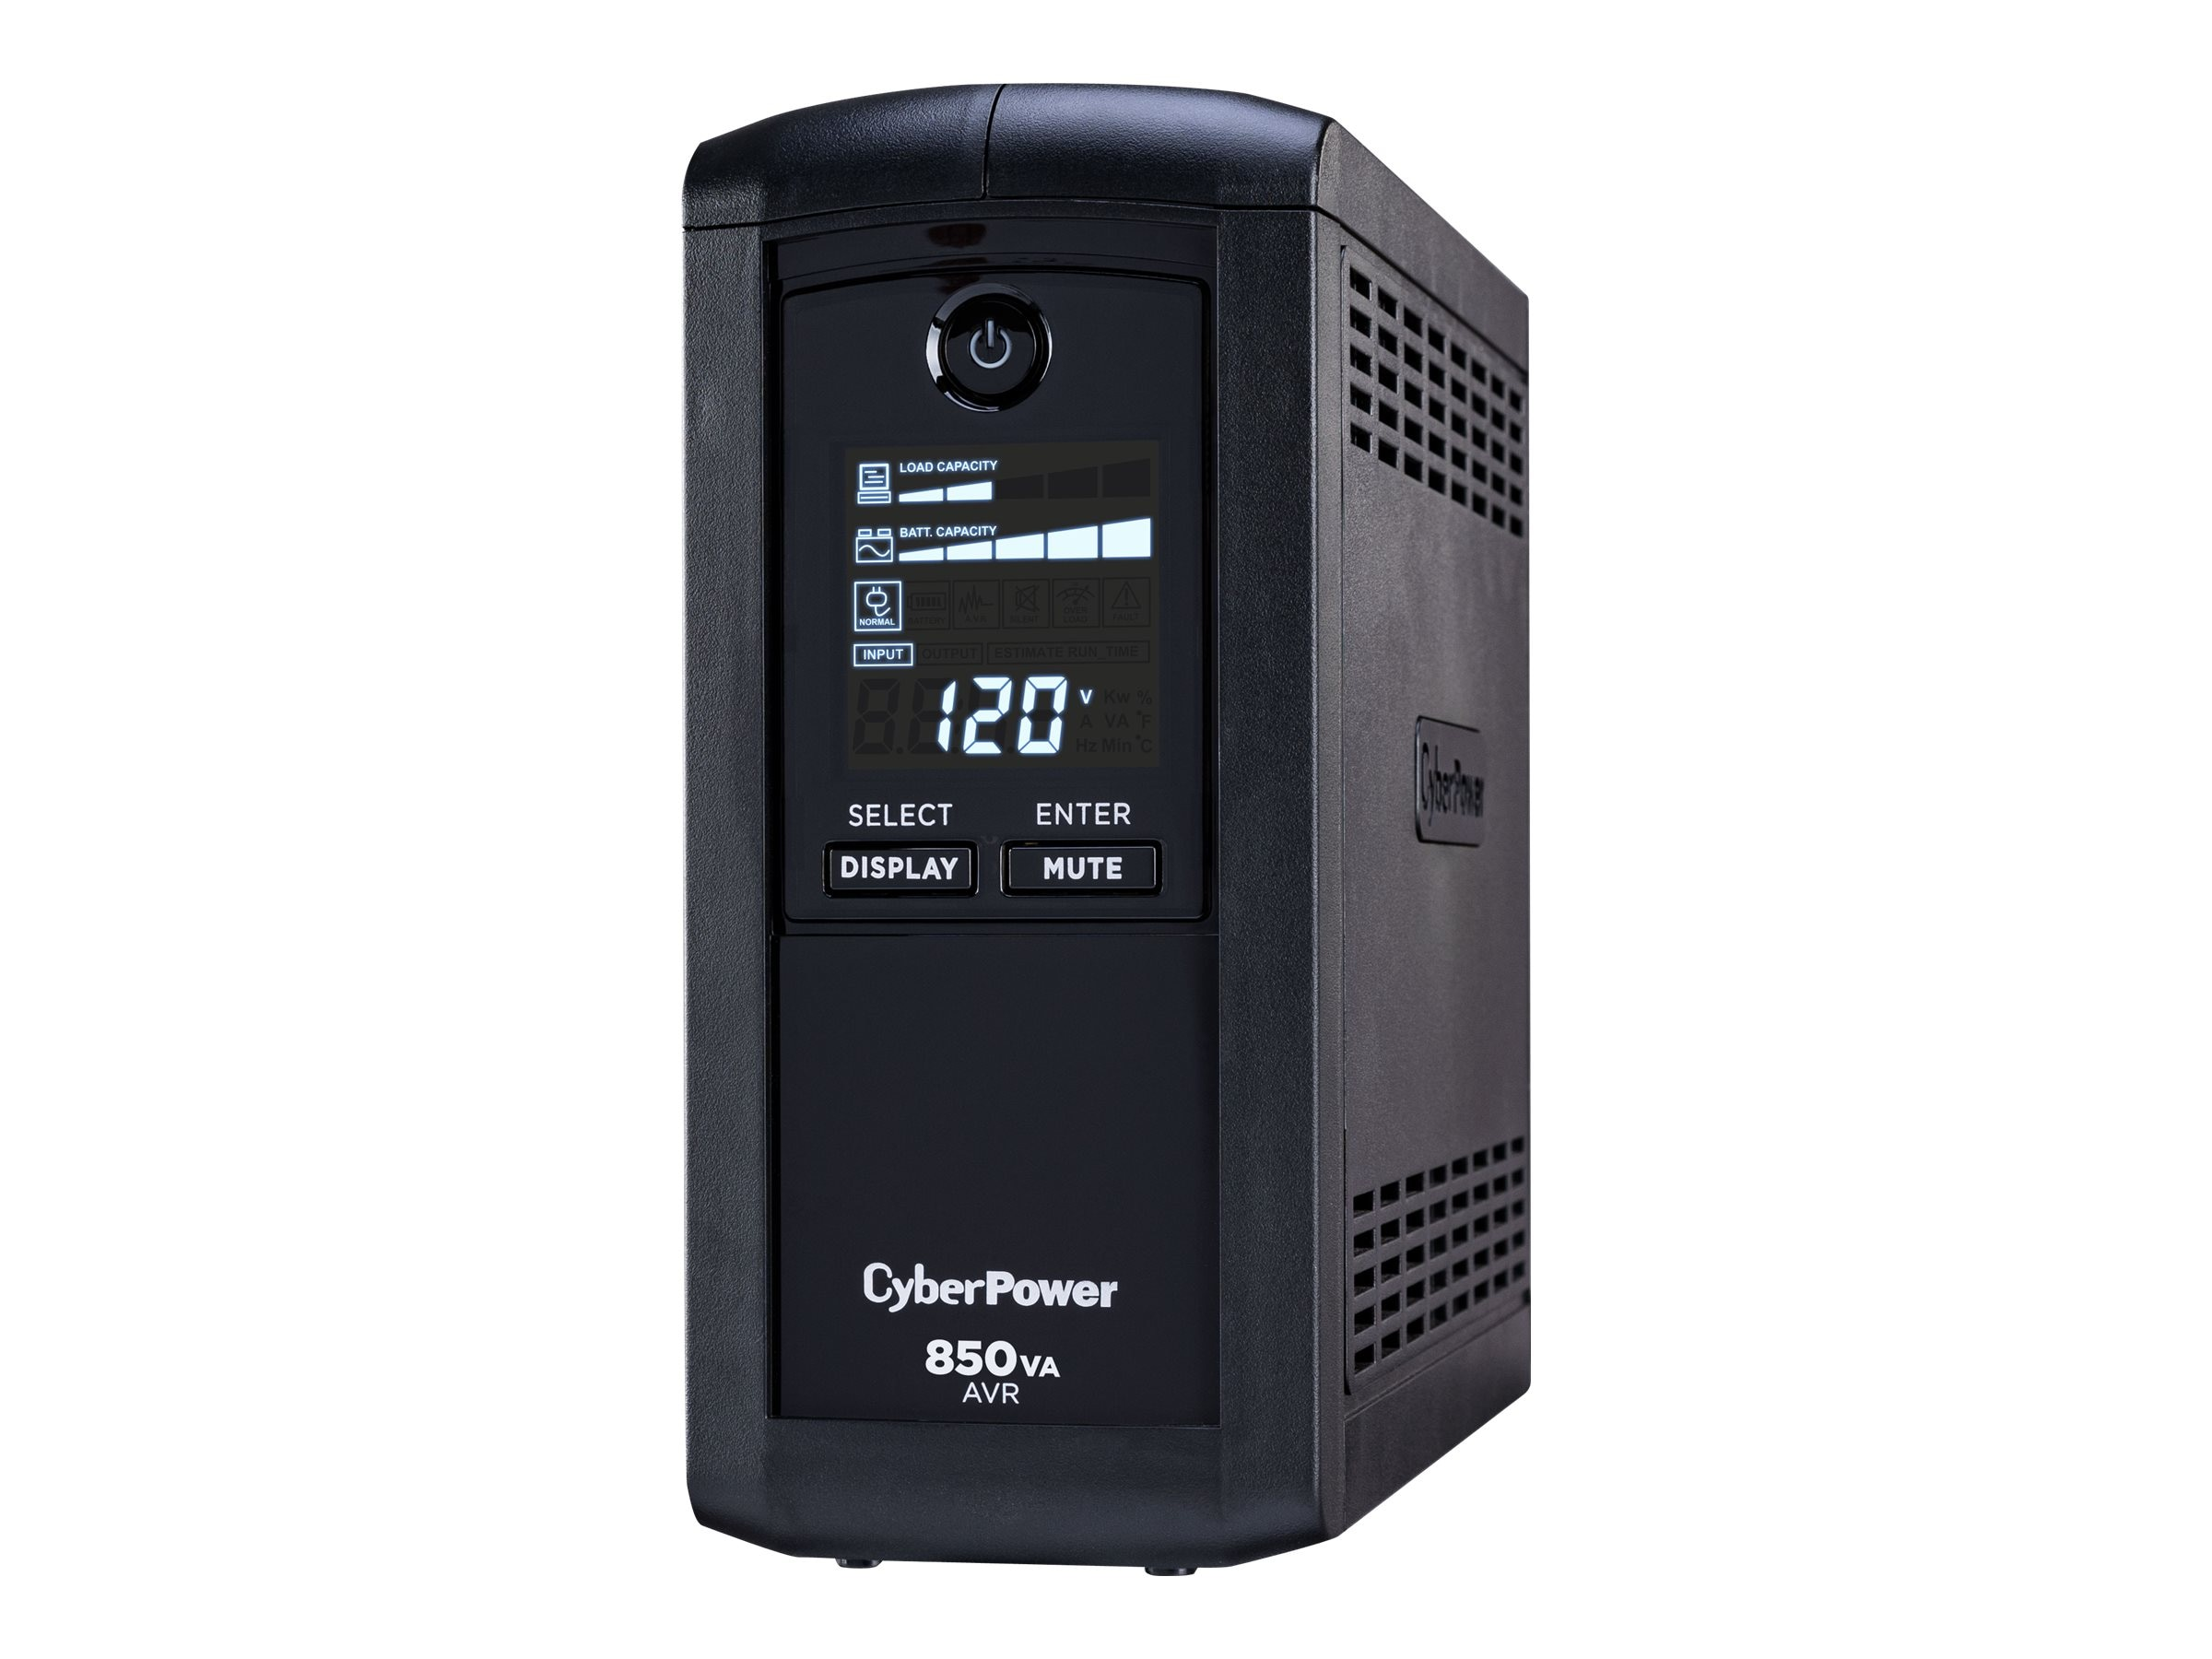 CyberPower 850VA 510W UPS with AVR, (9) Outlet RJ-11 RJ-45 Coax Tower LCD, Instant Rebate - Save $5, CP850AVRLCD